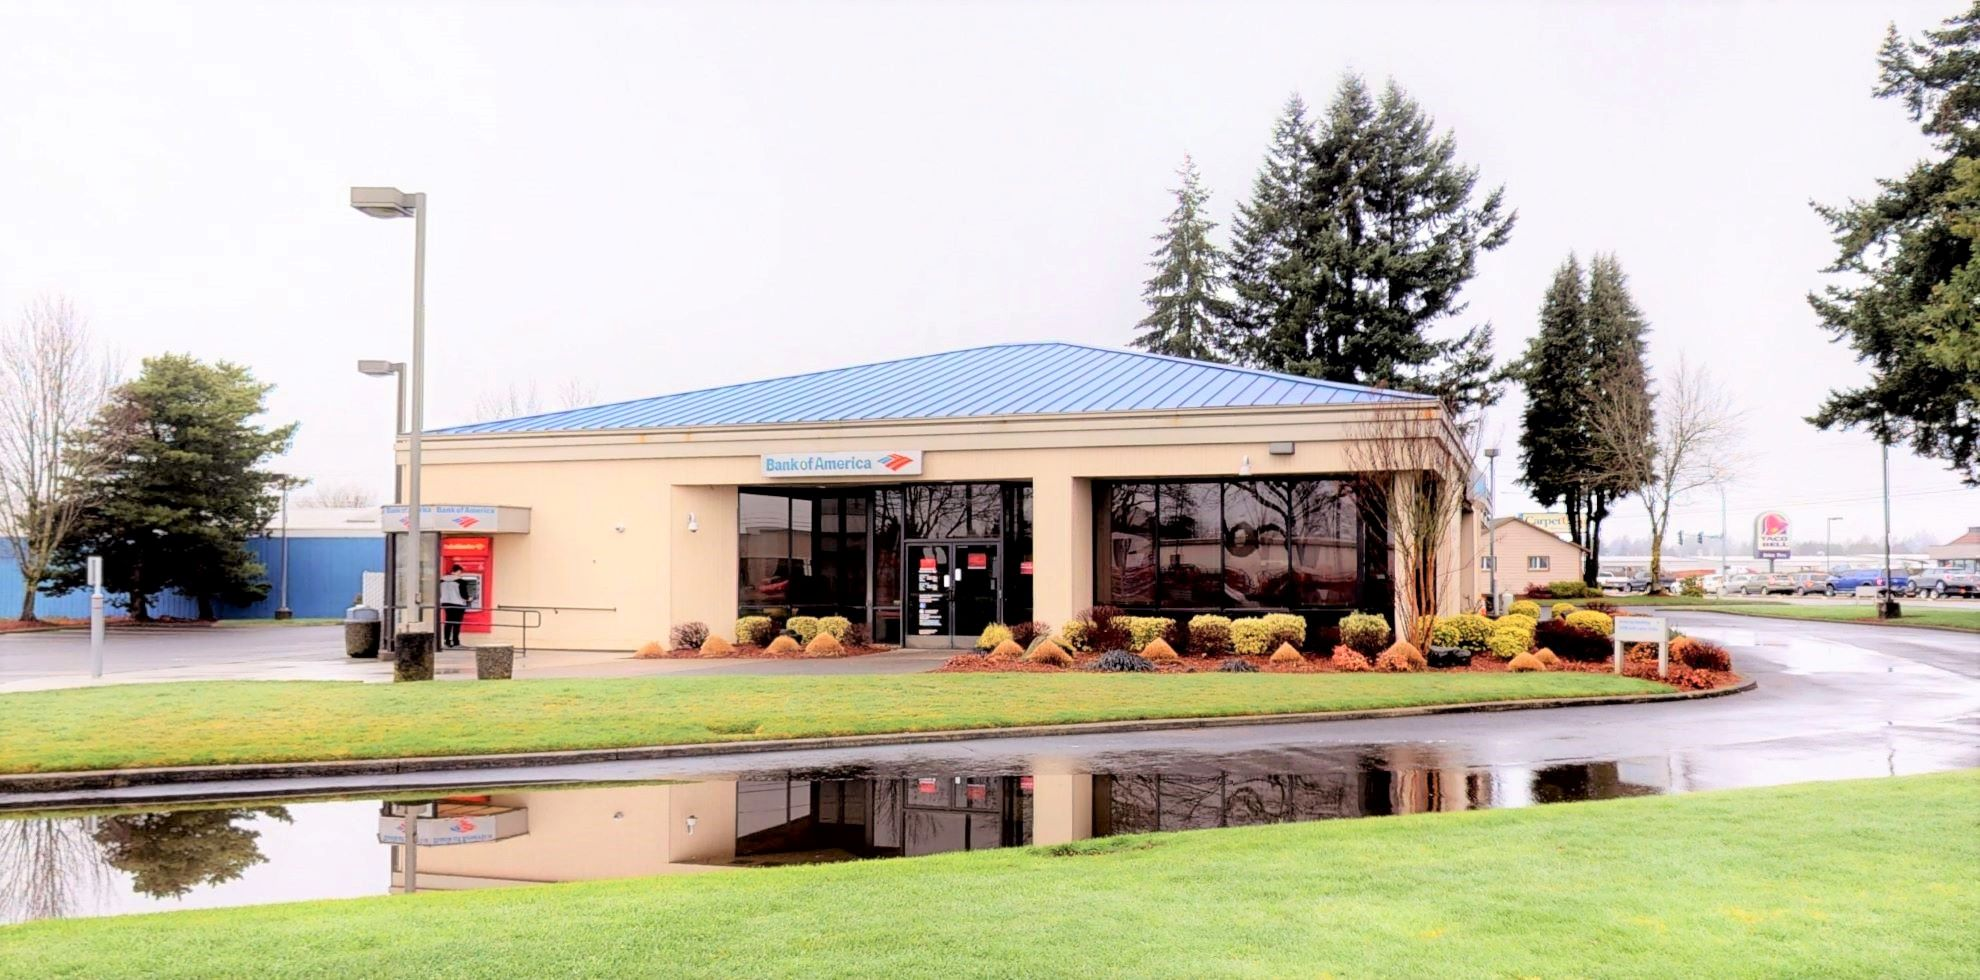 Bank of America financial center with drive-thru ATM   6404 NE 117th Ave, Vancouver, WA 98662